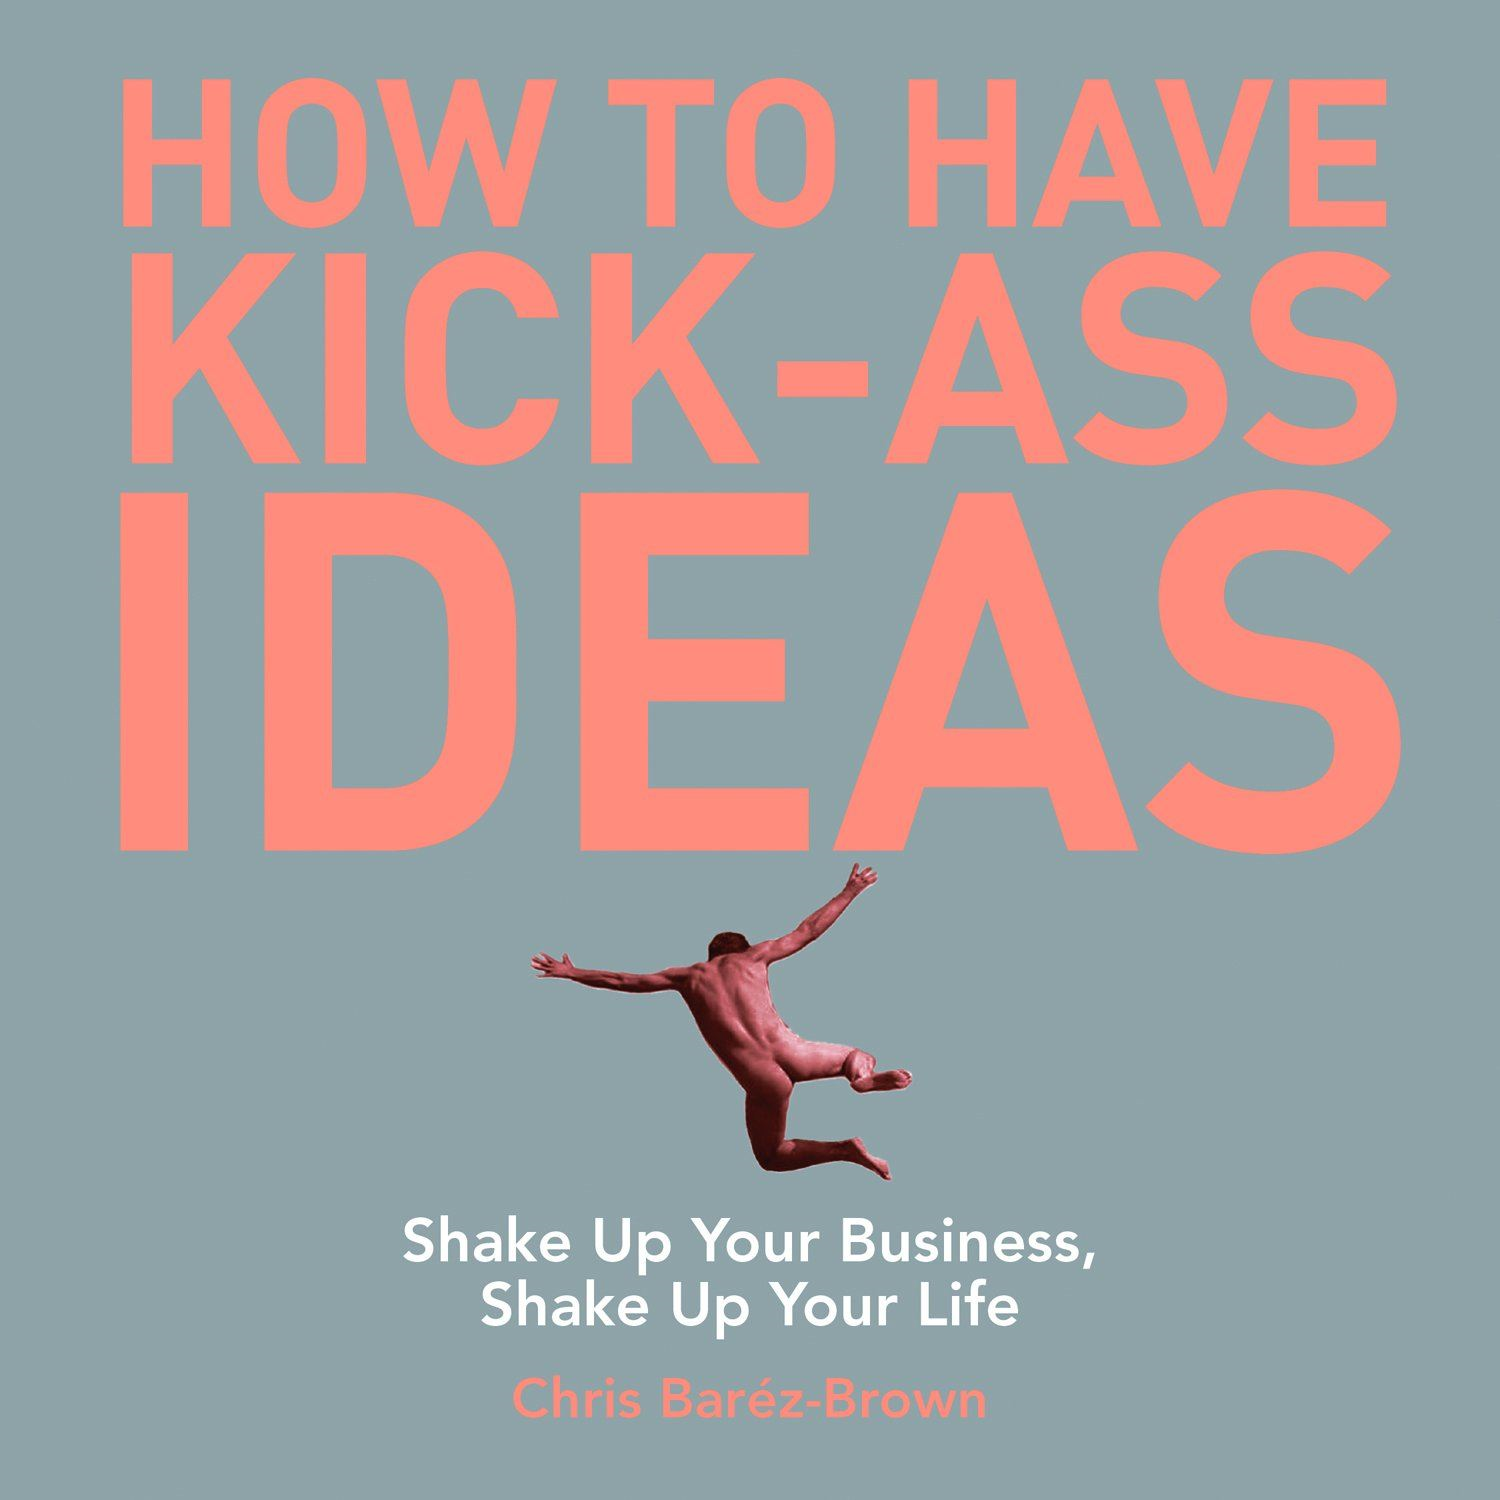 How to Have Kick-Ass Ideas: Shake Up Your Business, Shake Up Your Life By: Chris Baréz-Brown